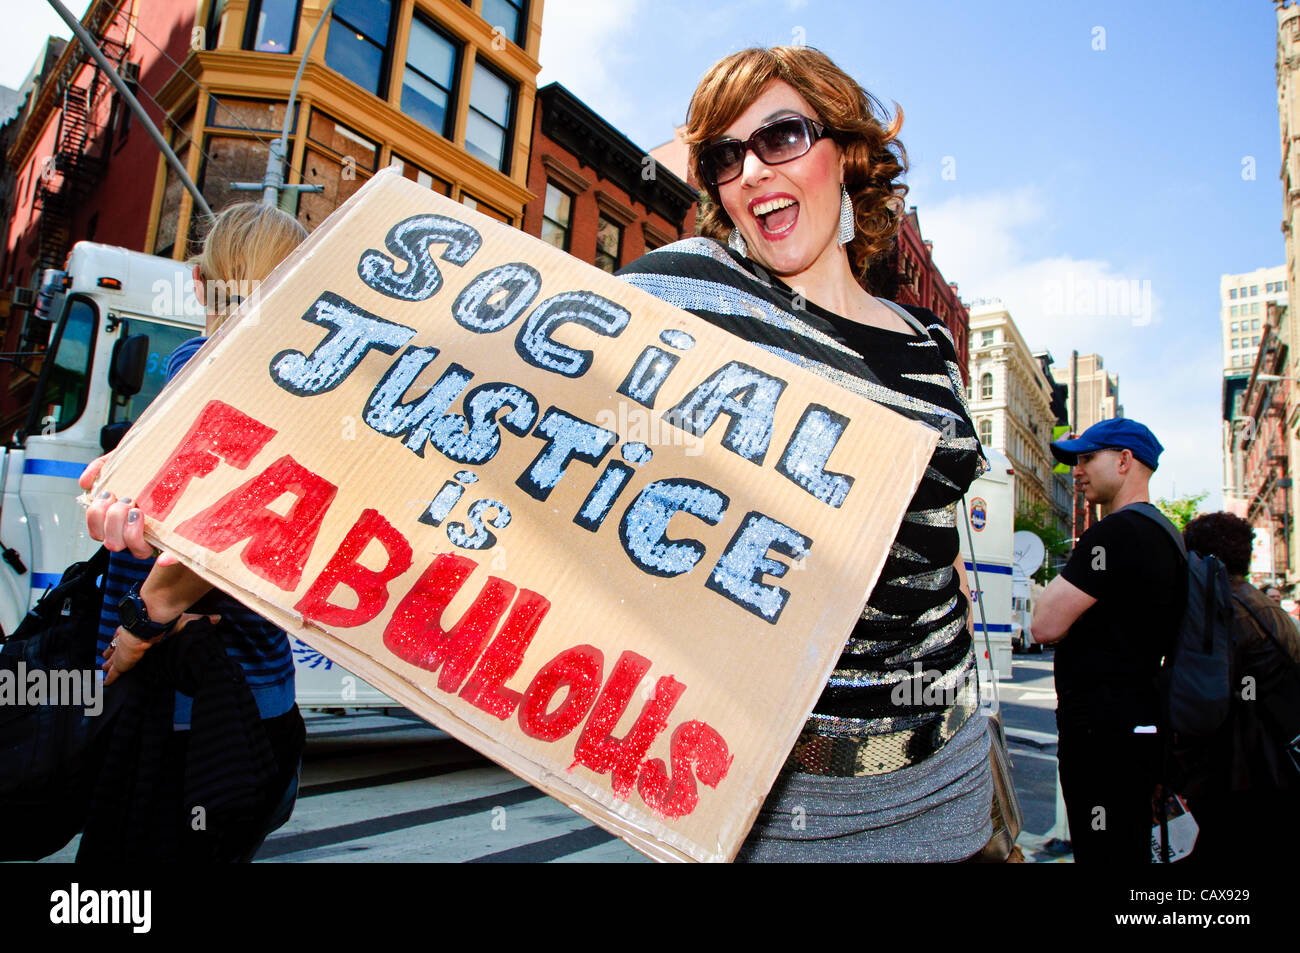 Protester's sign at May Day protest (International Workers Day) in Manhattan, New York City. May1, 2012. - Stock Image